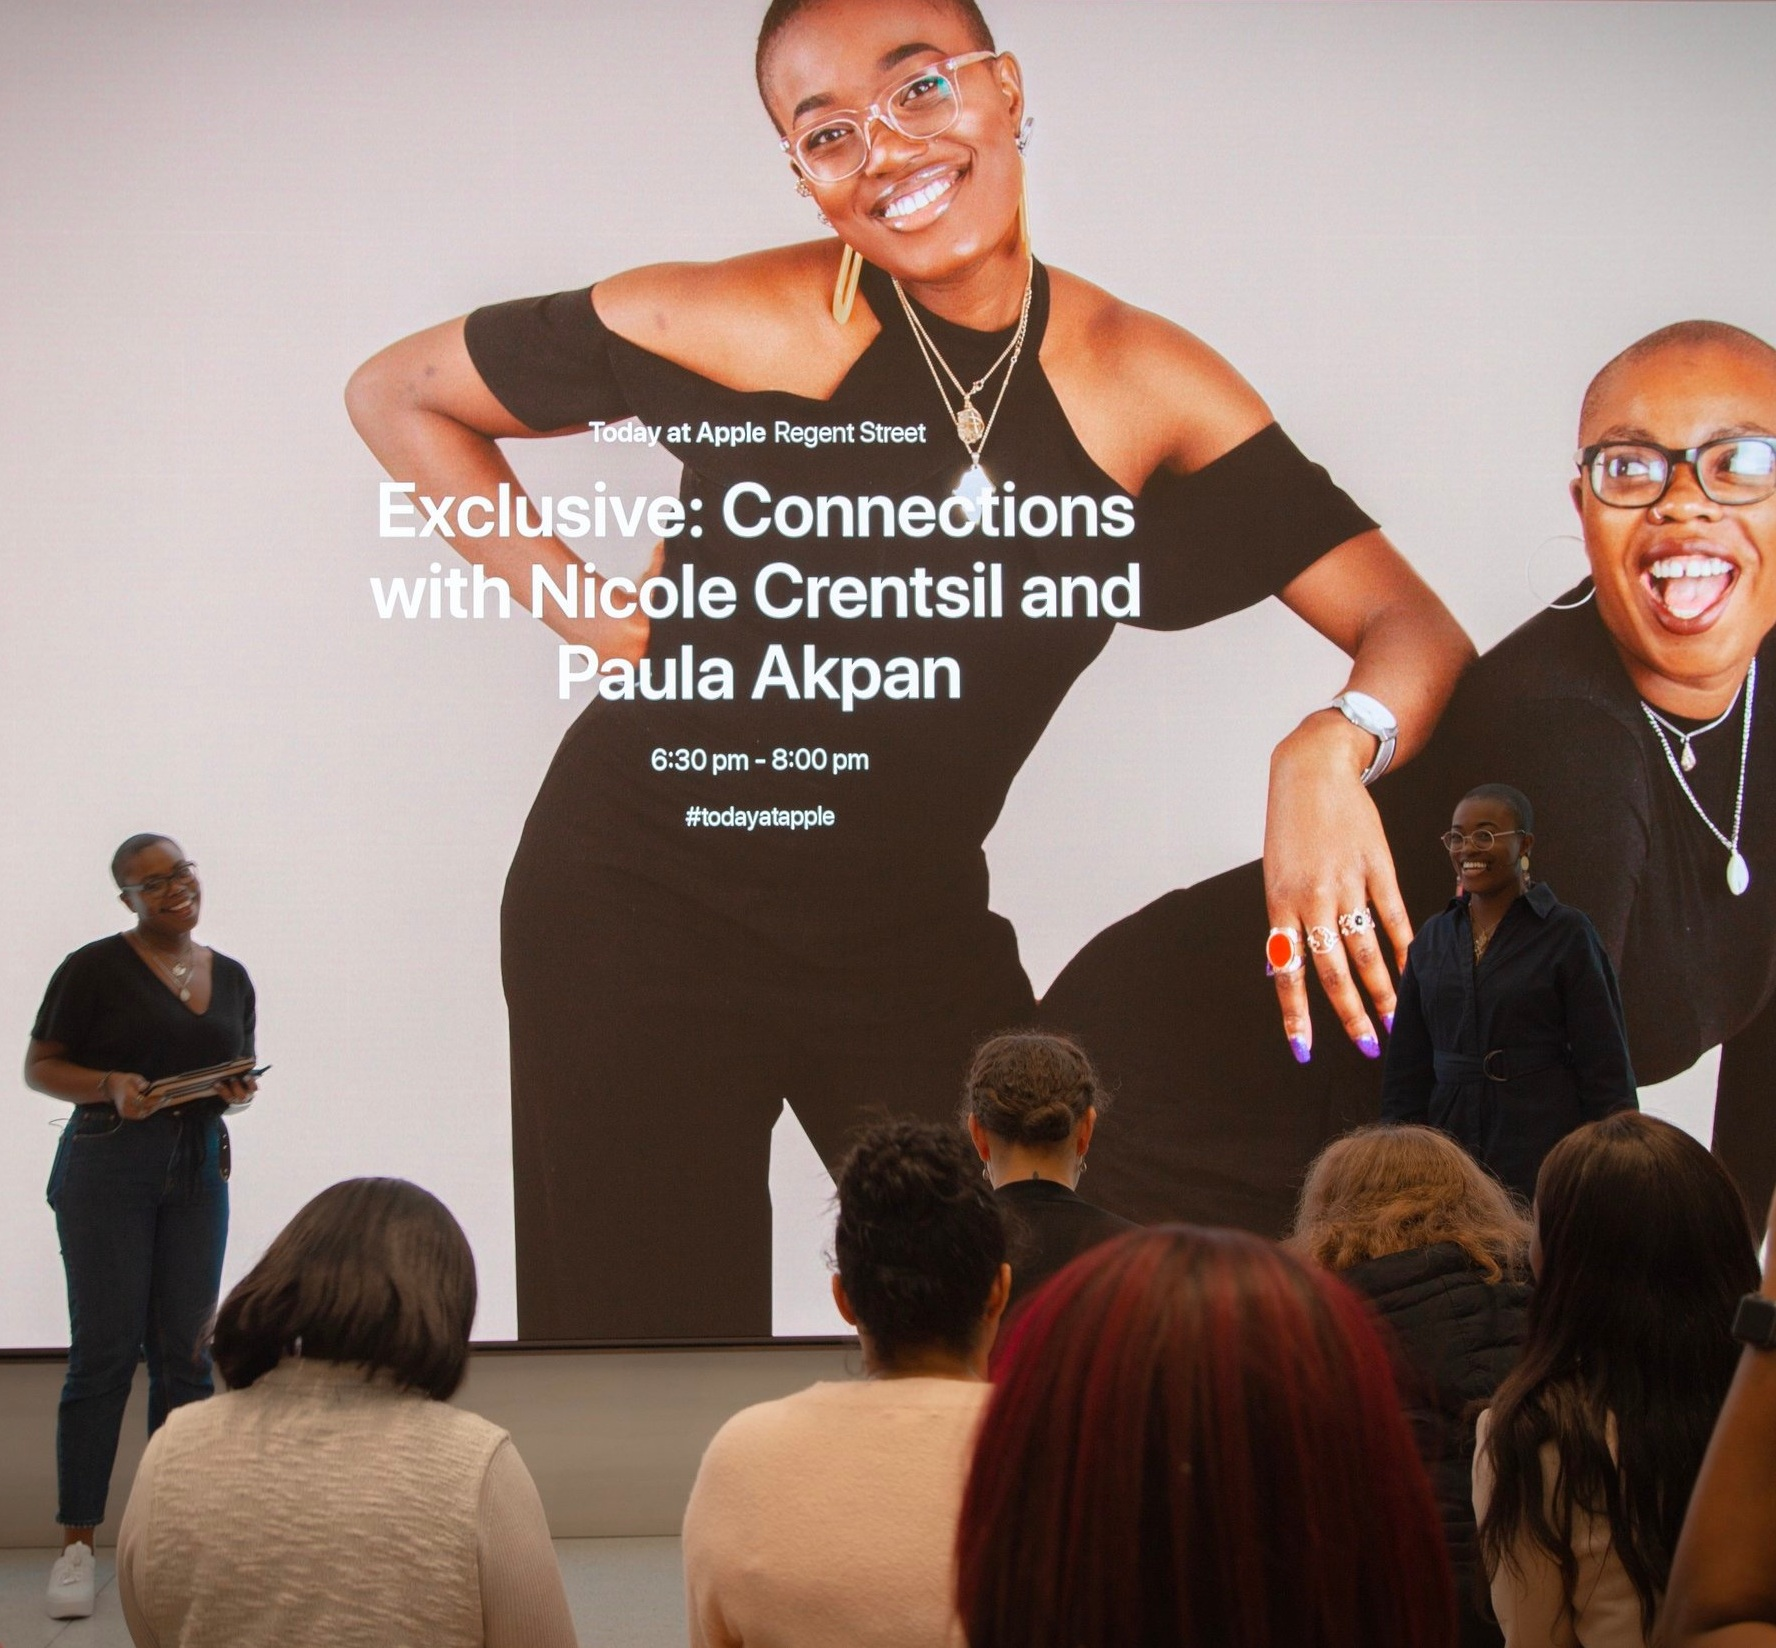 We spoke at Apple! - As part of Apple Regent Street' Business Entrepreneur series, we delivered a keynote and interactive activity in store.